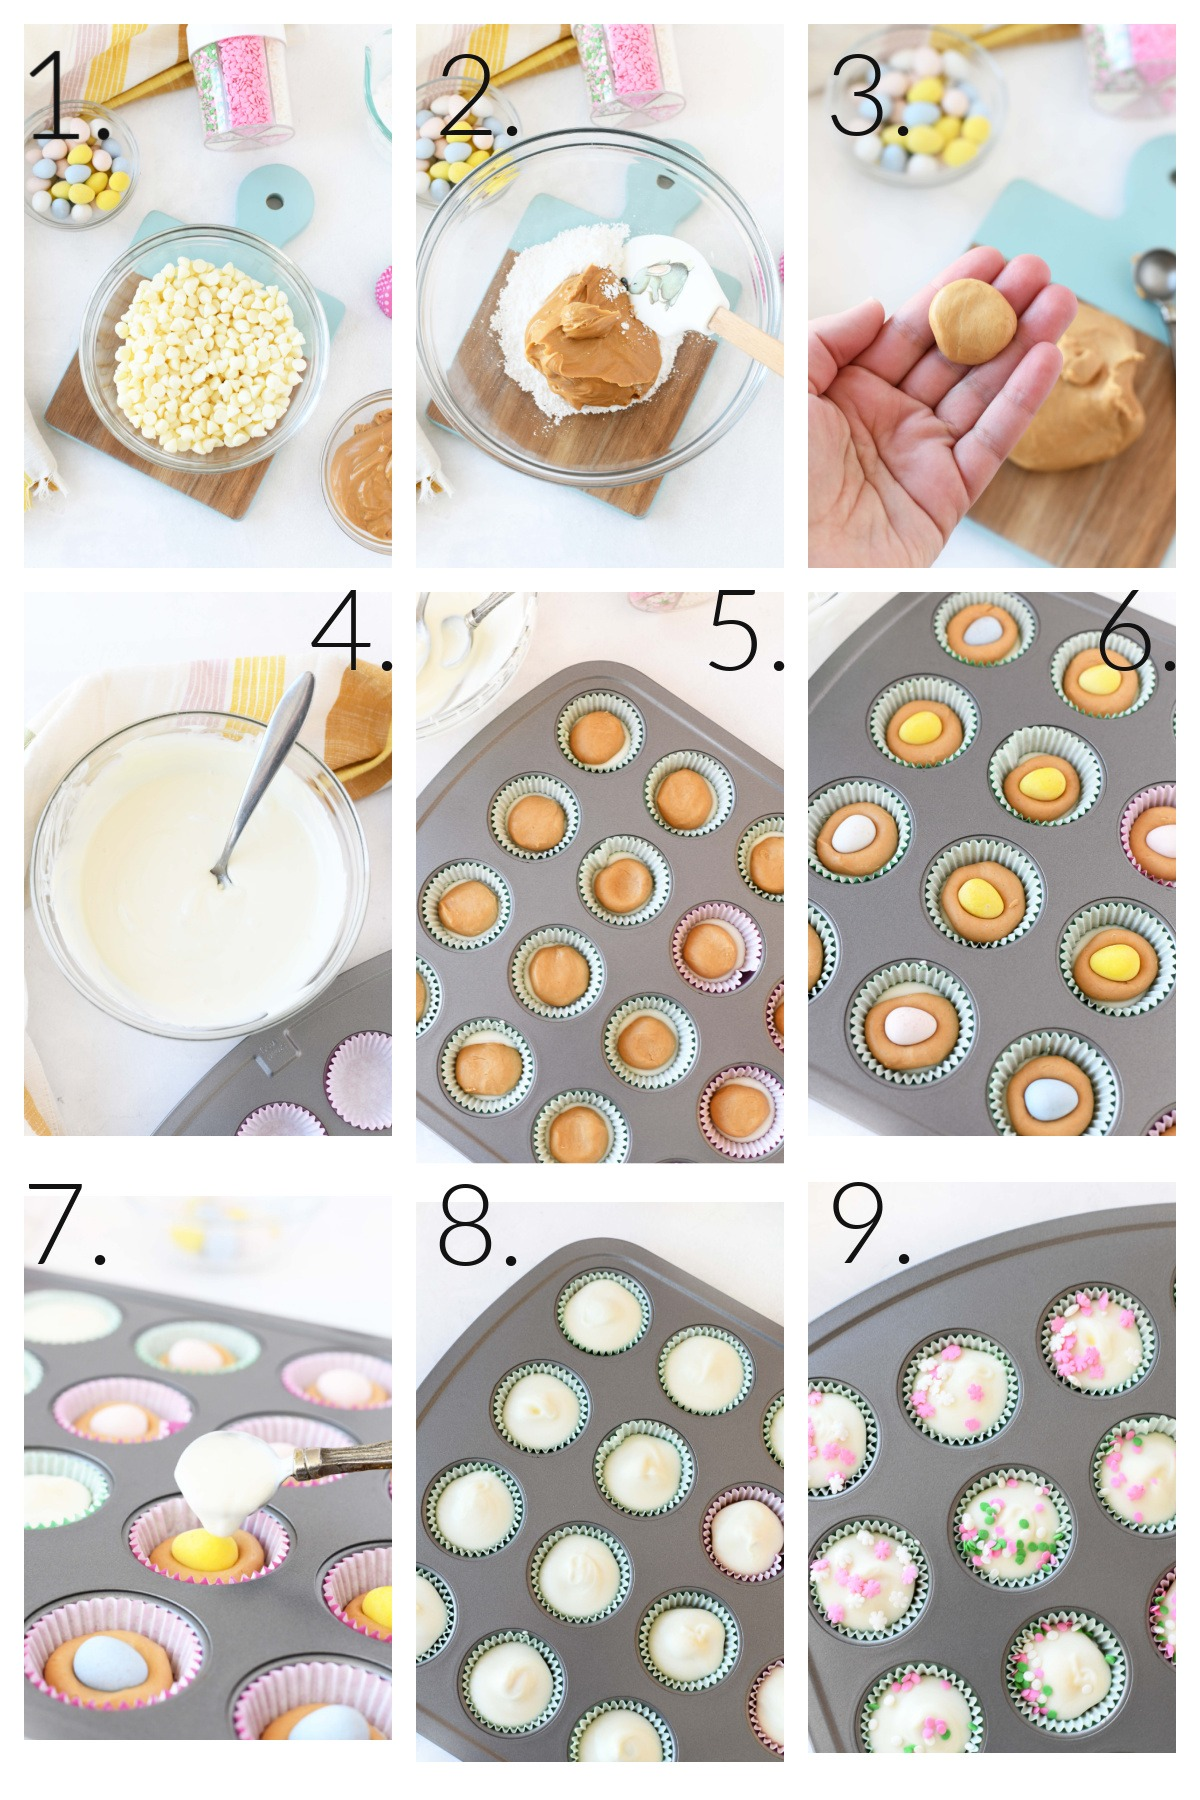 How to Make Easter Egg Peanut Butter Cups. A 9 block visual grid collage of how to make these mini cups.